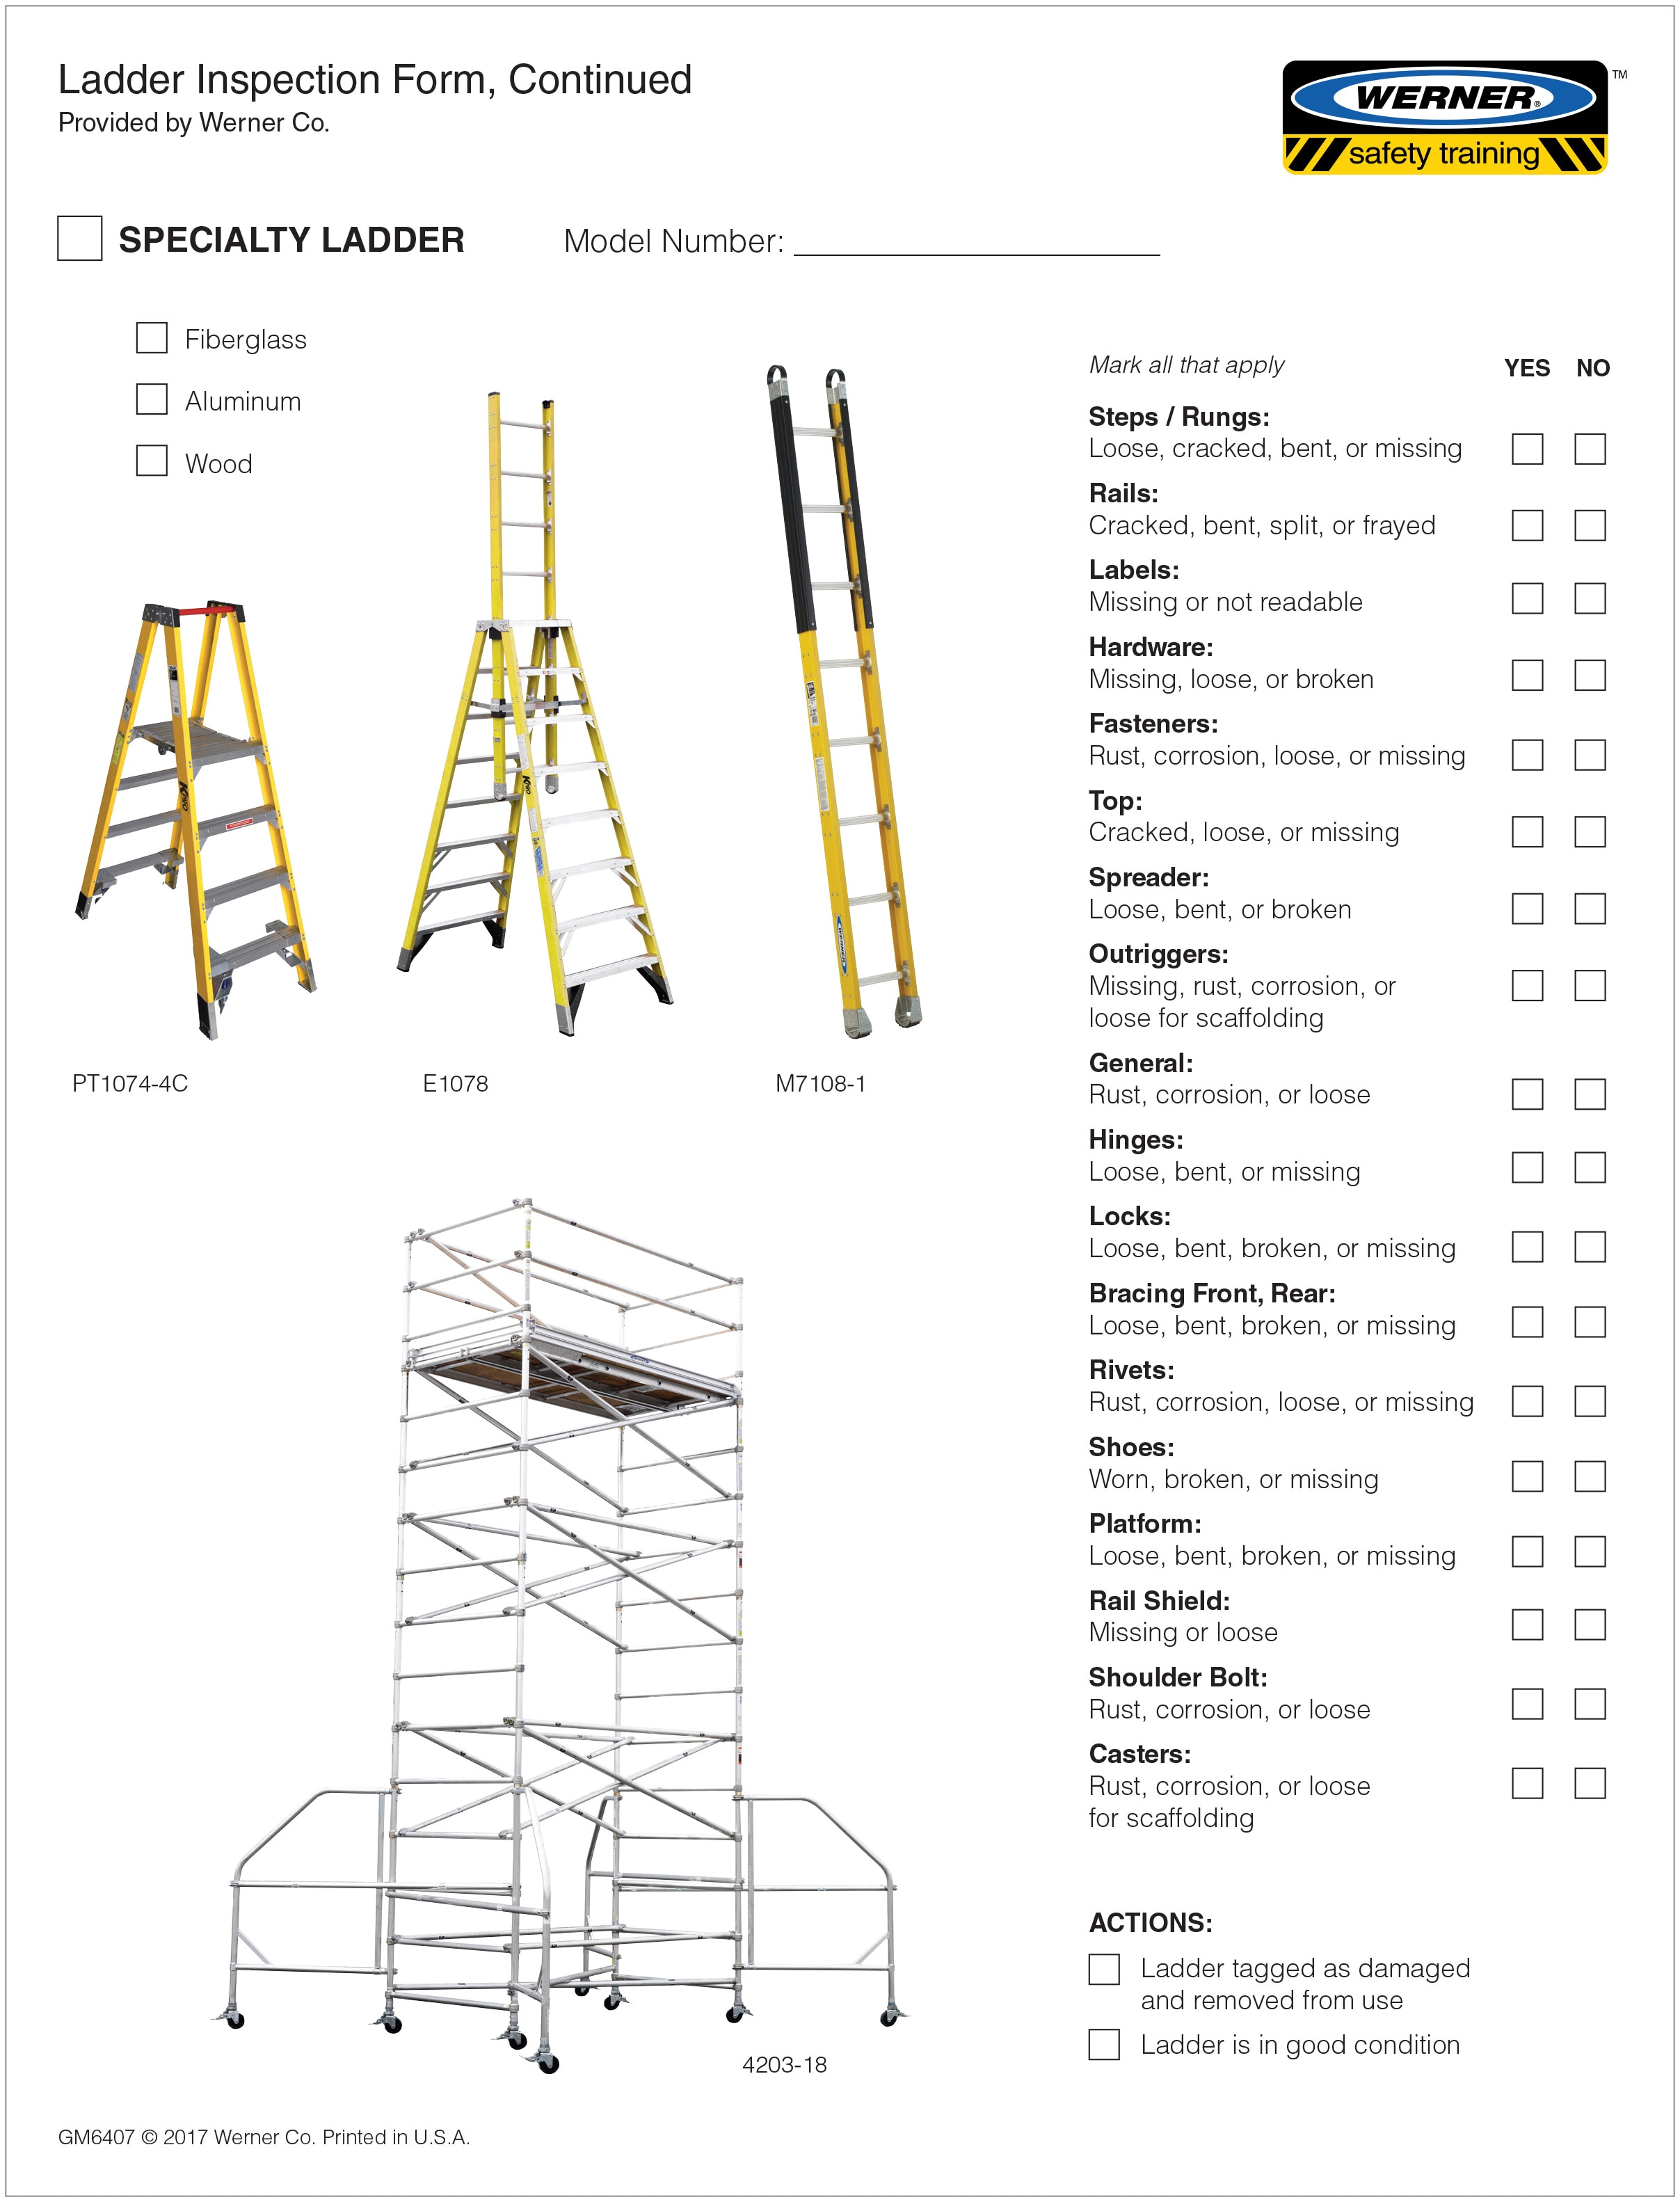 Scaffold Harness Inspection Form